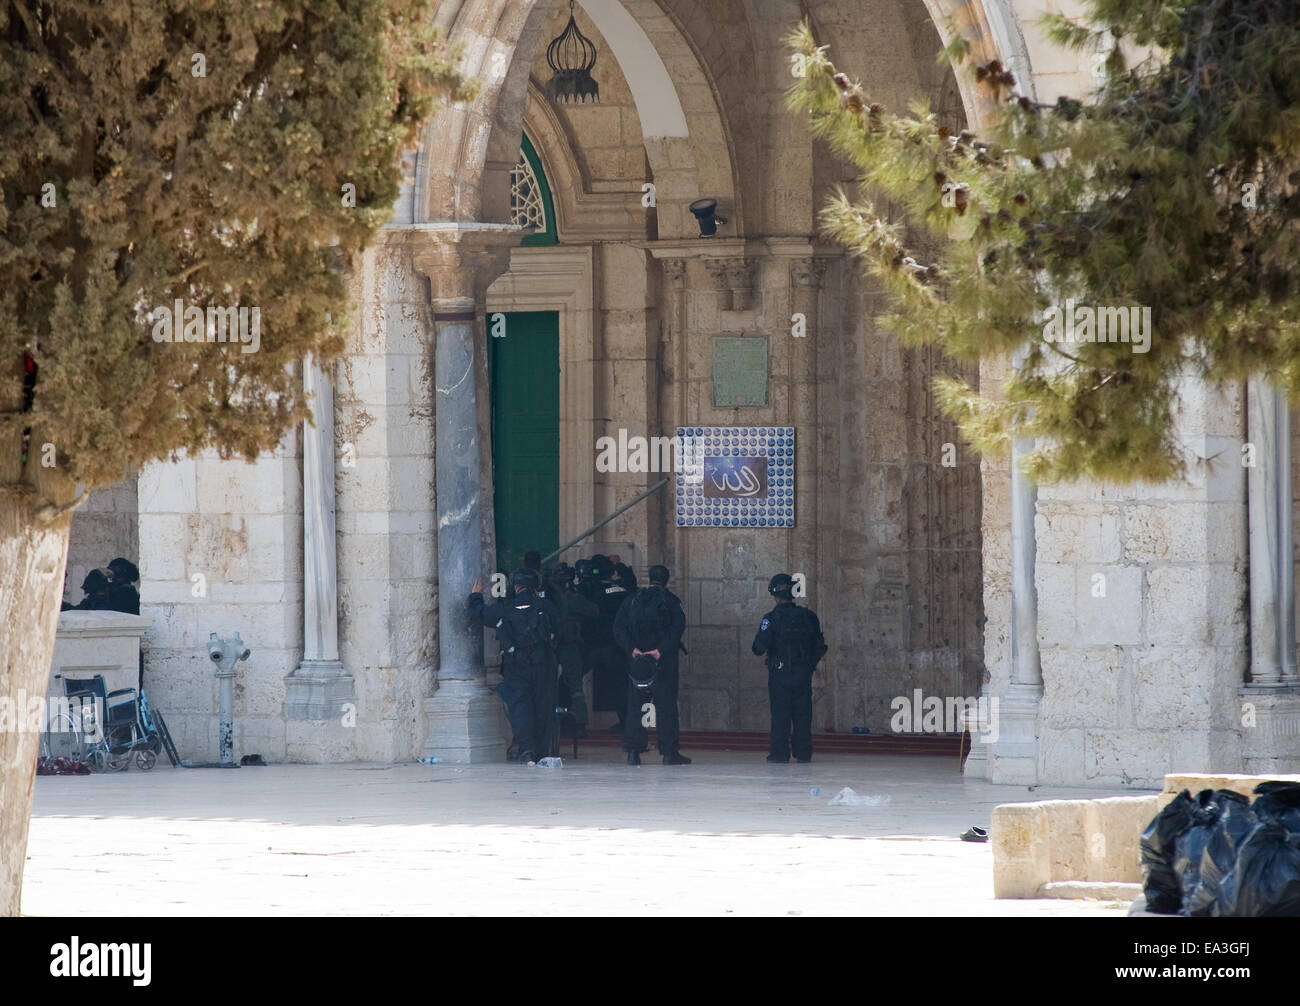 Israeli security officers with an iron bar try to open a door of the main entrance of the Al-aqsa mosque in Jerusalem - Stock Image